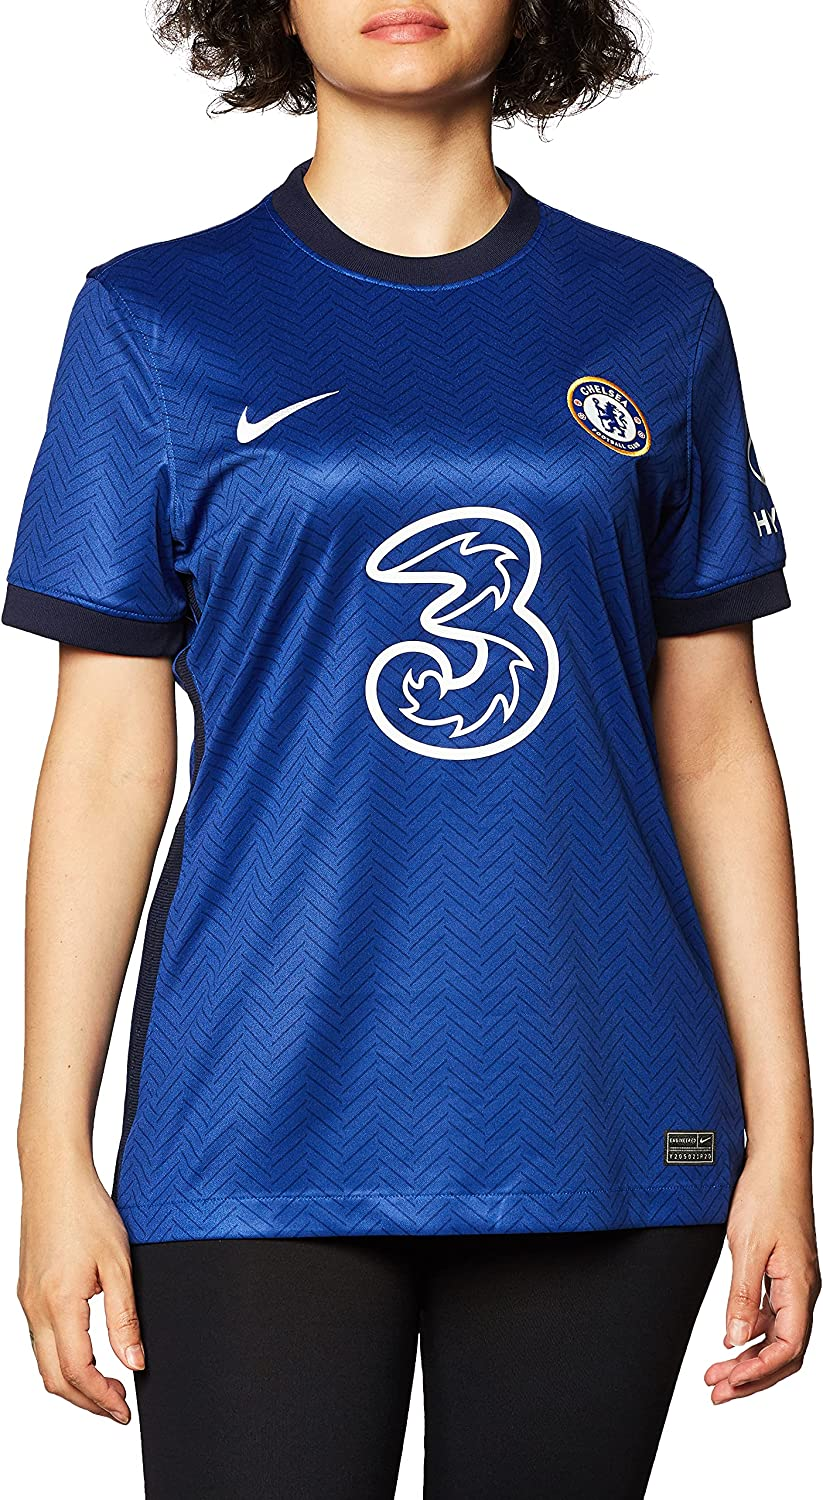 Nike 2020-2021 Chelsea Home Ladies Football Soccer T-Shirt Jersey